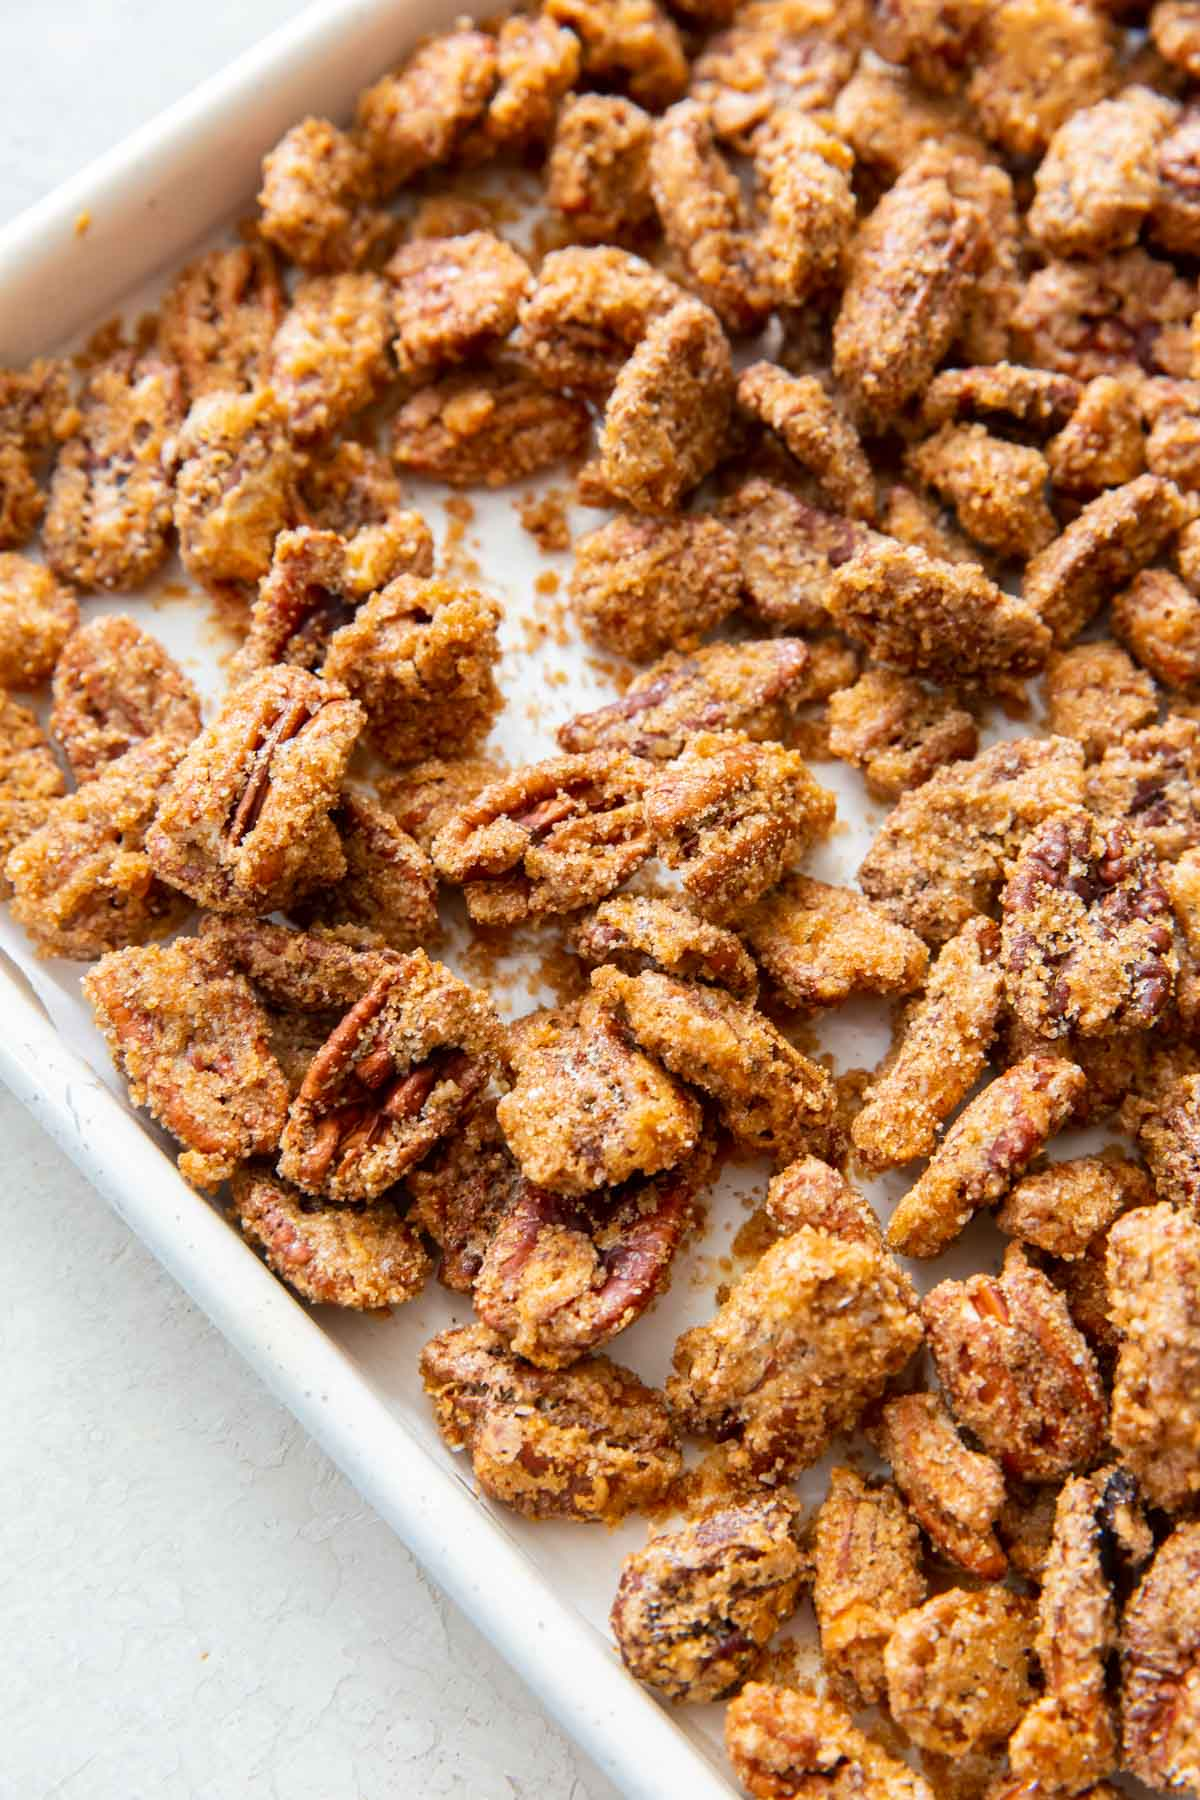 roasted candied pecans on a baking sheet